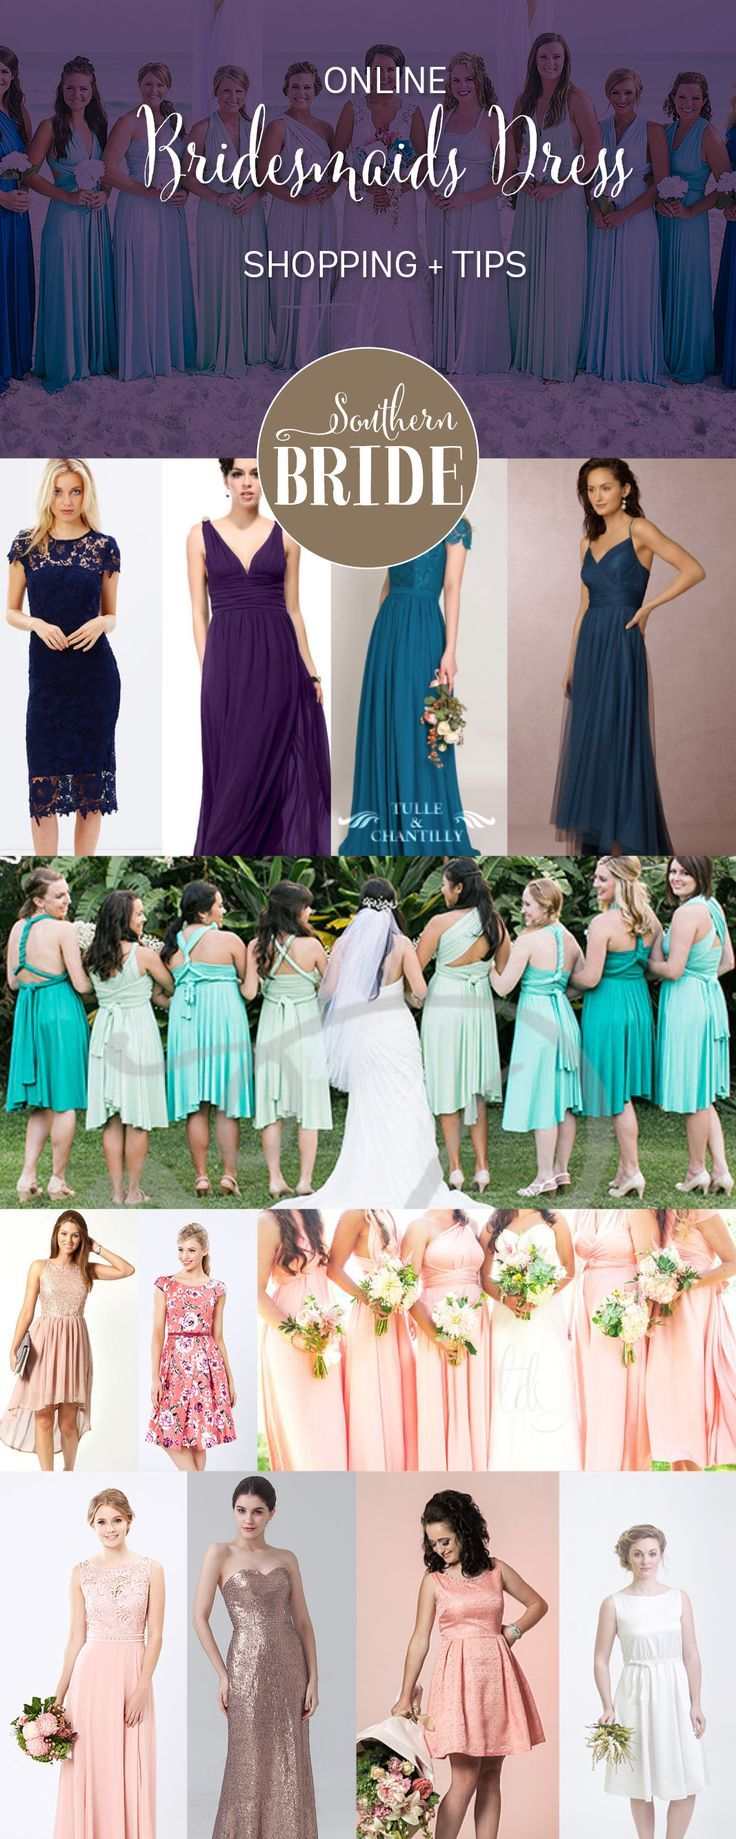 Looking for Bridesmaid Dresses